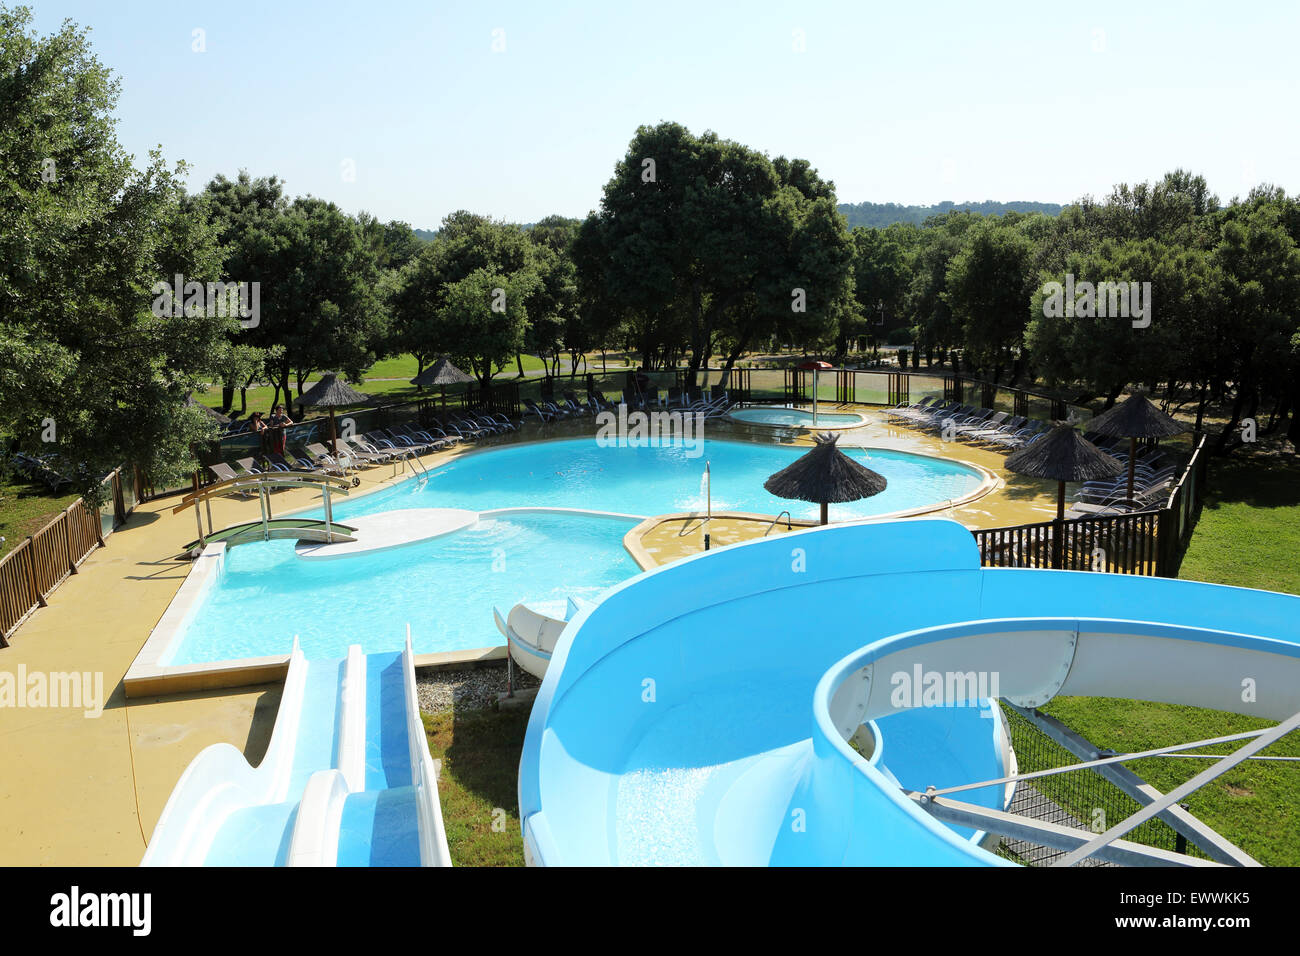 Nice Waterslides And A Swimming Pool At The Domaine De Massereau Campsite In  Sommieres, France. The Campsite Is The First In France T